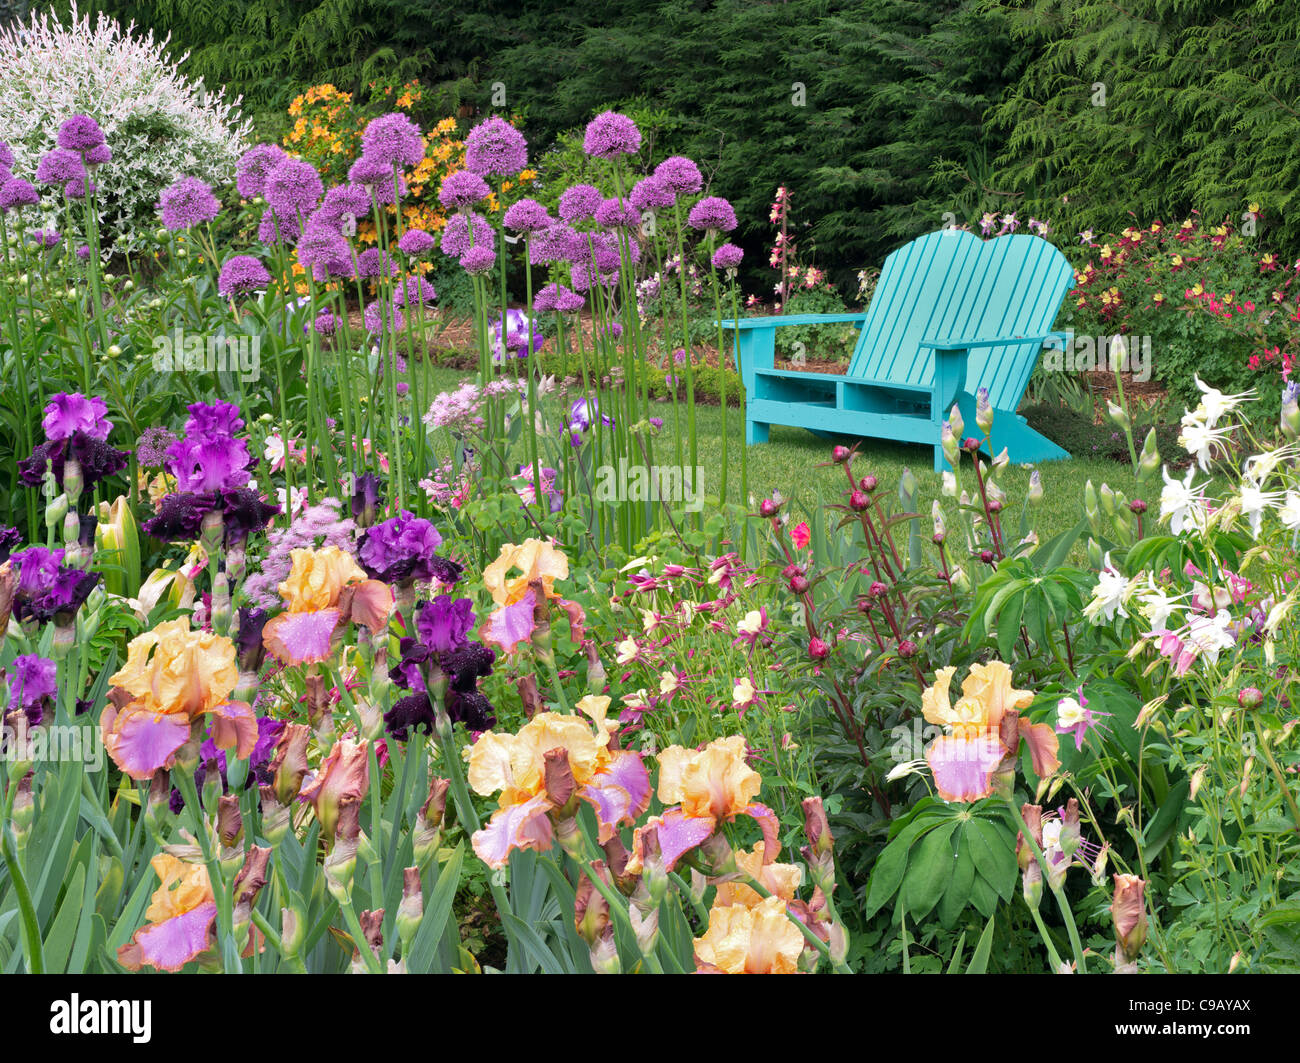 Iris and other flowering plants with chair at Schriners Iris Garden. Oregon - Stock Image